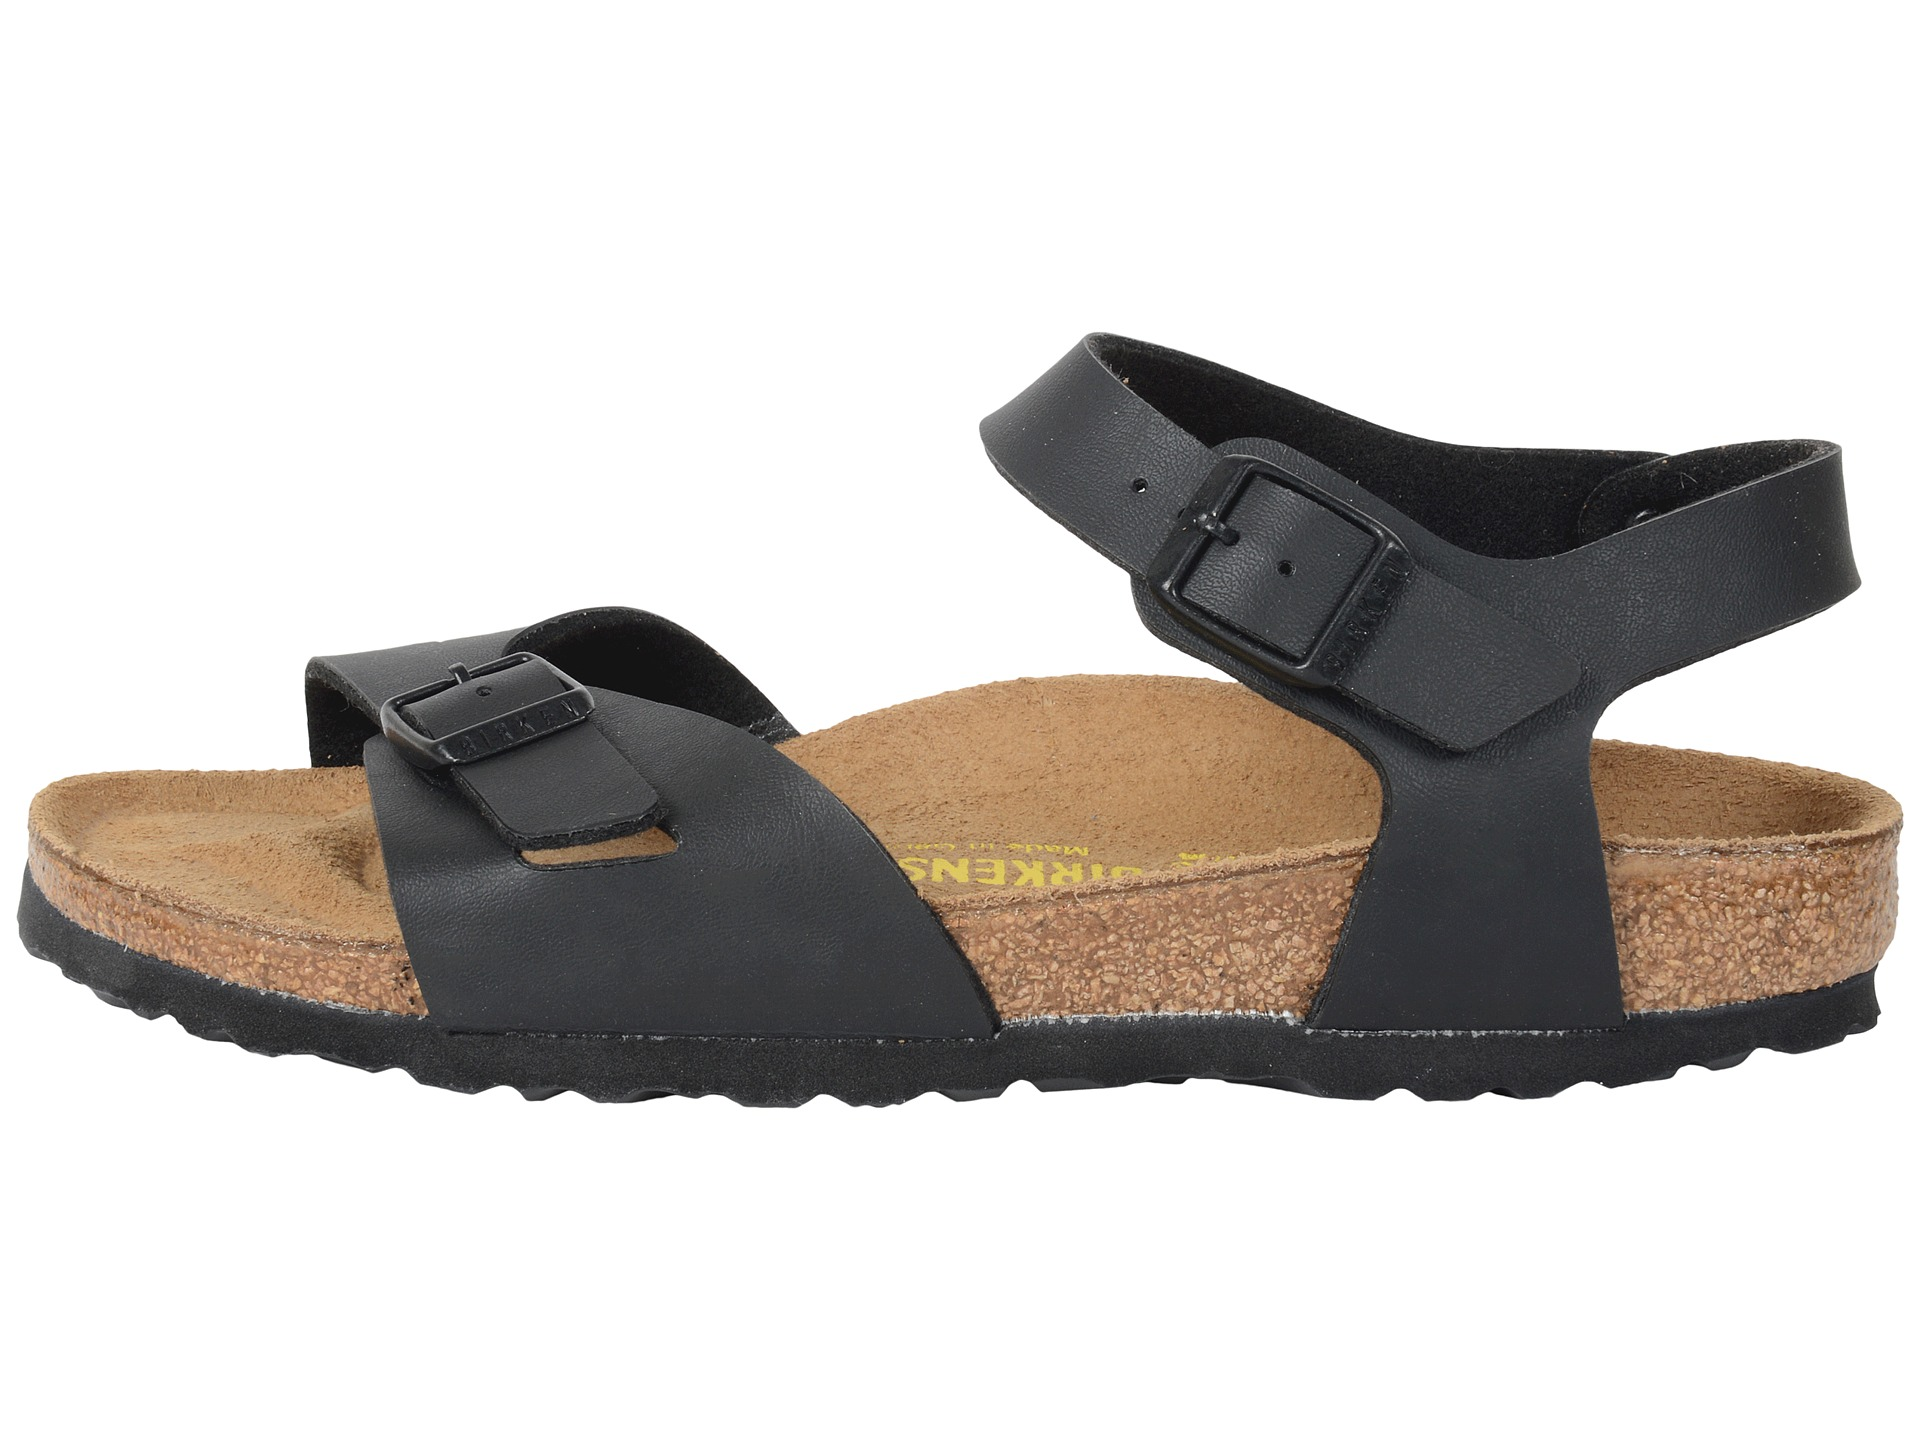 Width Shoes Size Charg